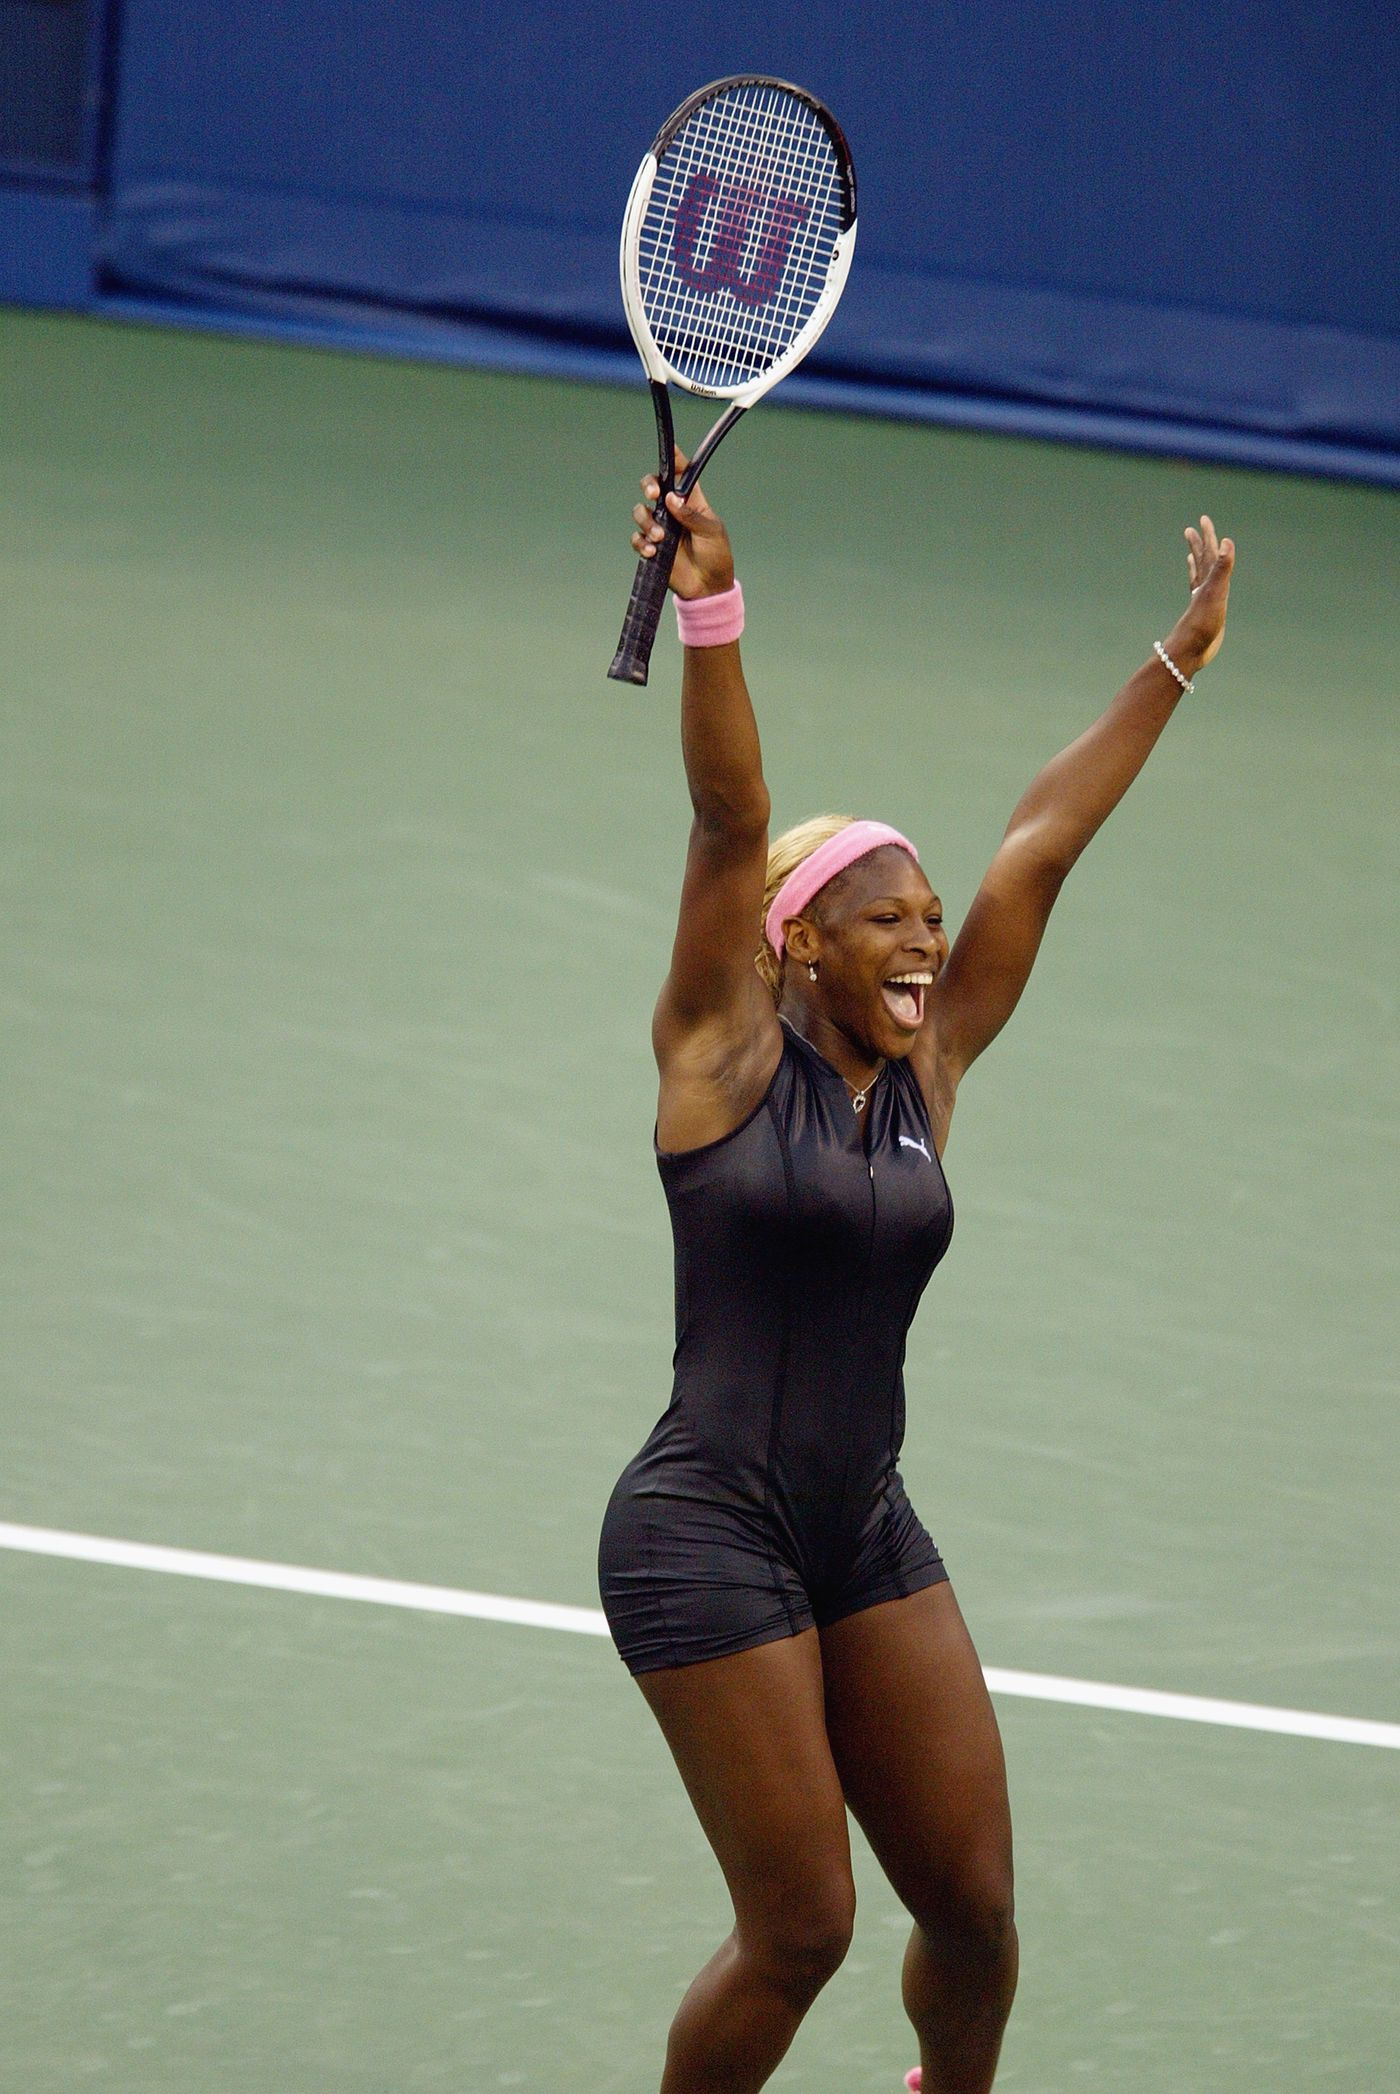 e0c76673 The French Open's Serena Williams catsuit ban exposes tennis's ...